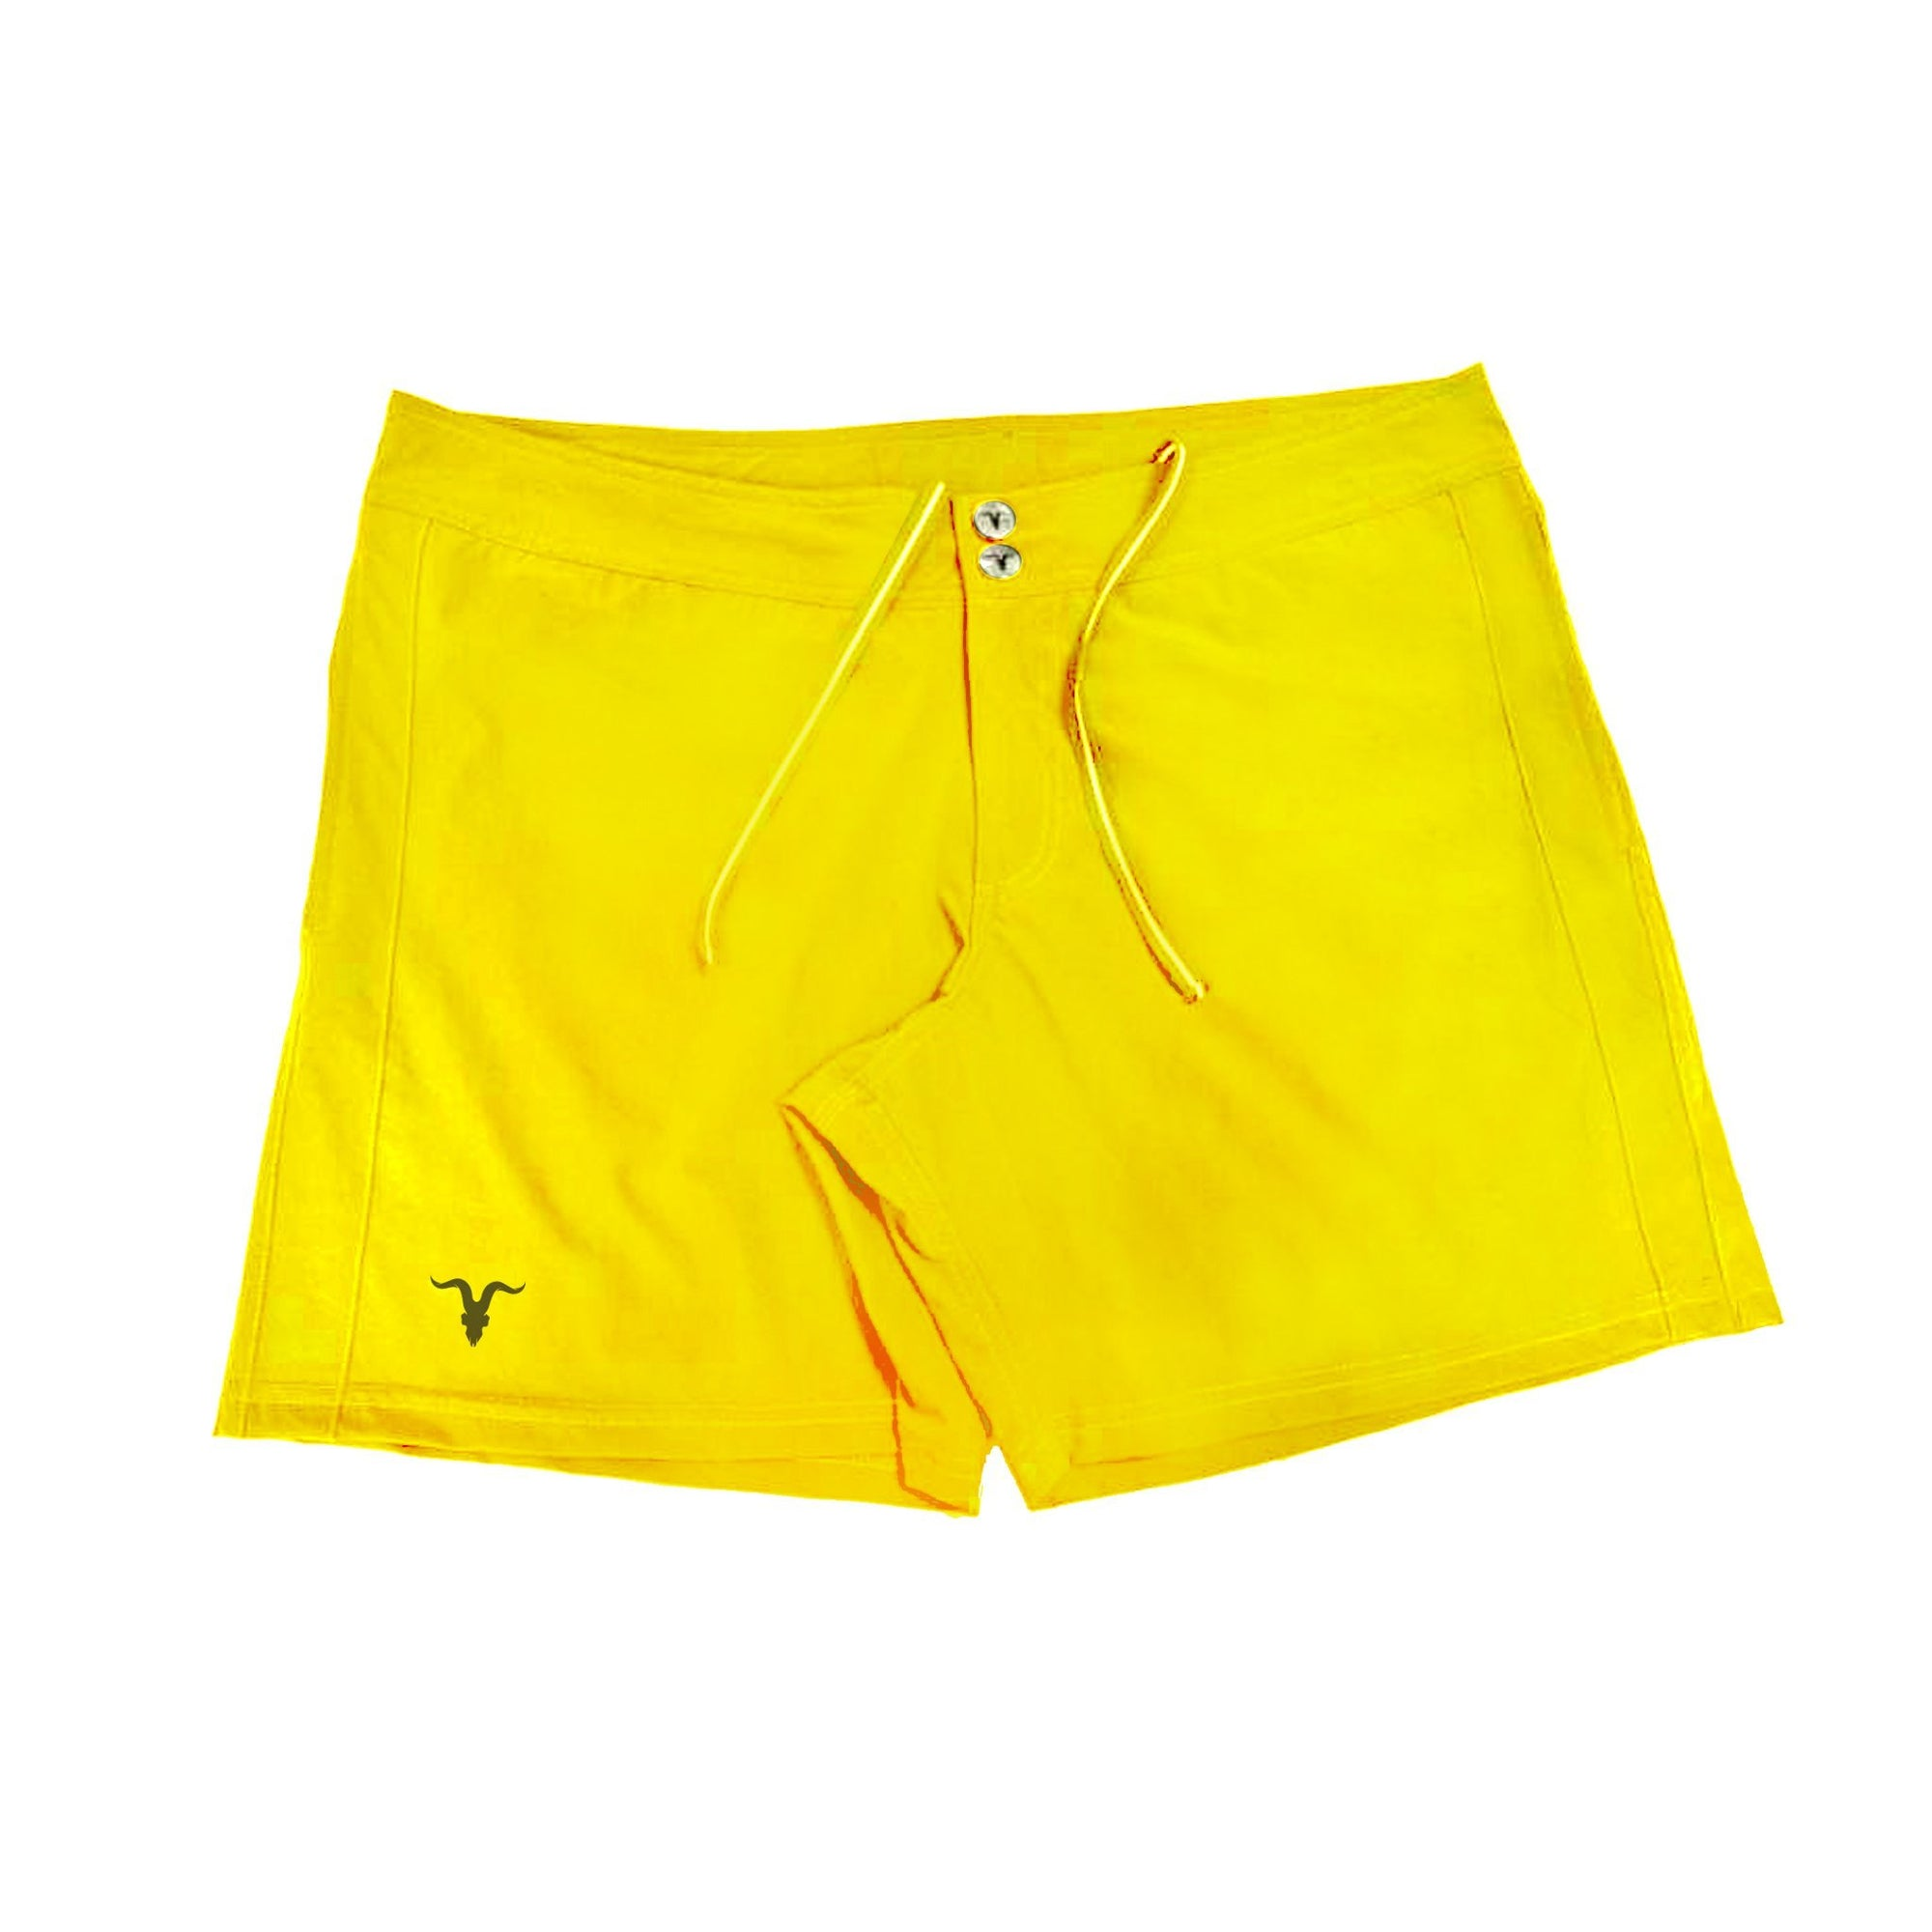 Men's Swim Shorts - Yellow